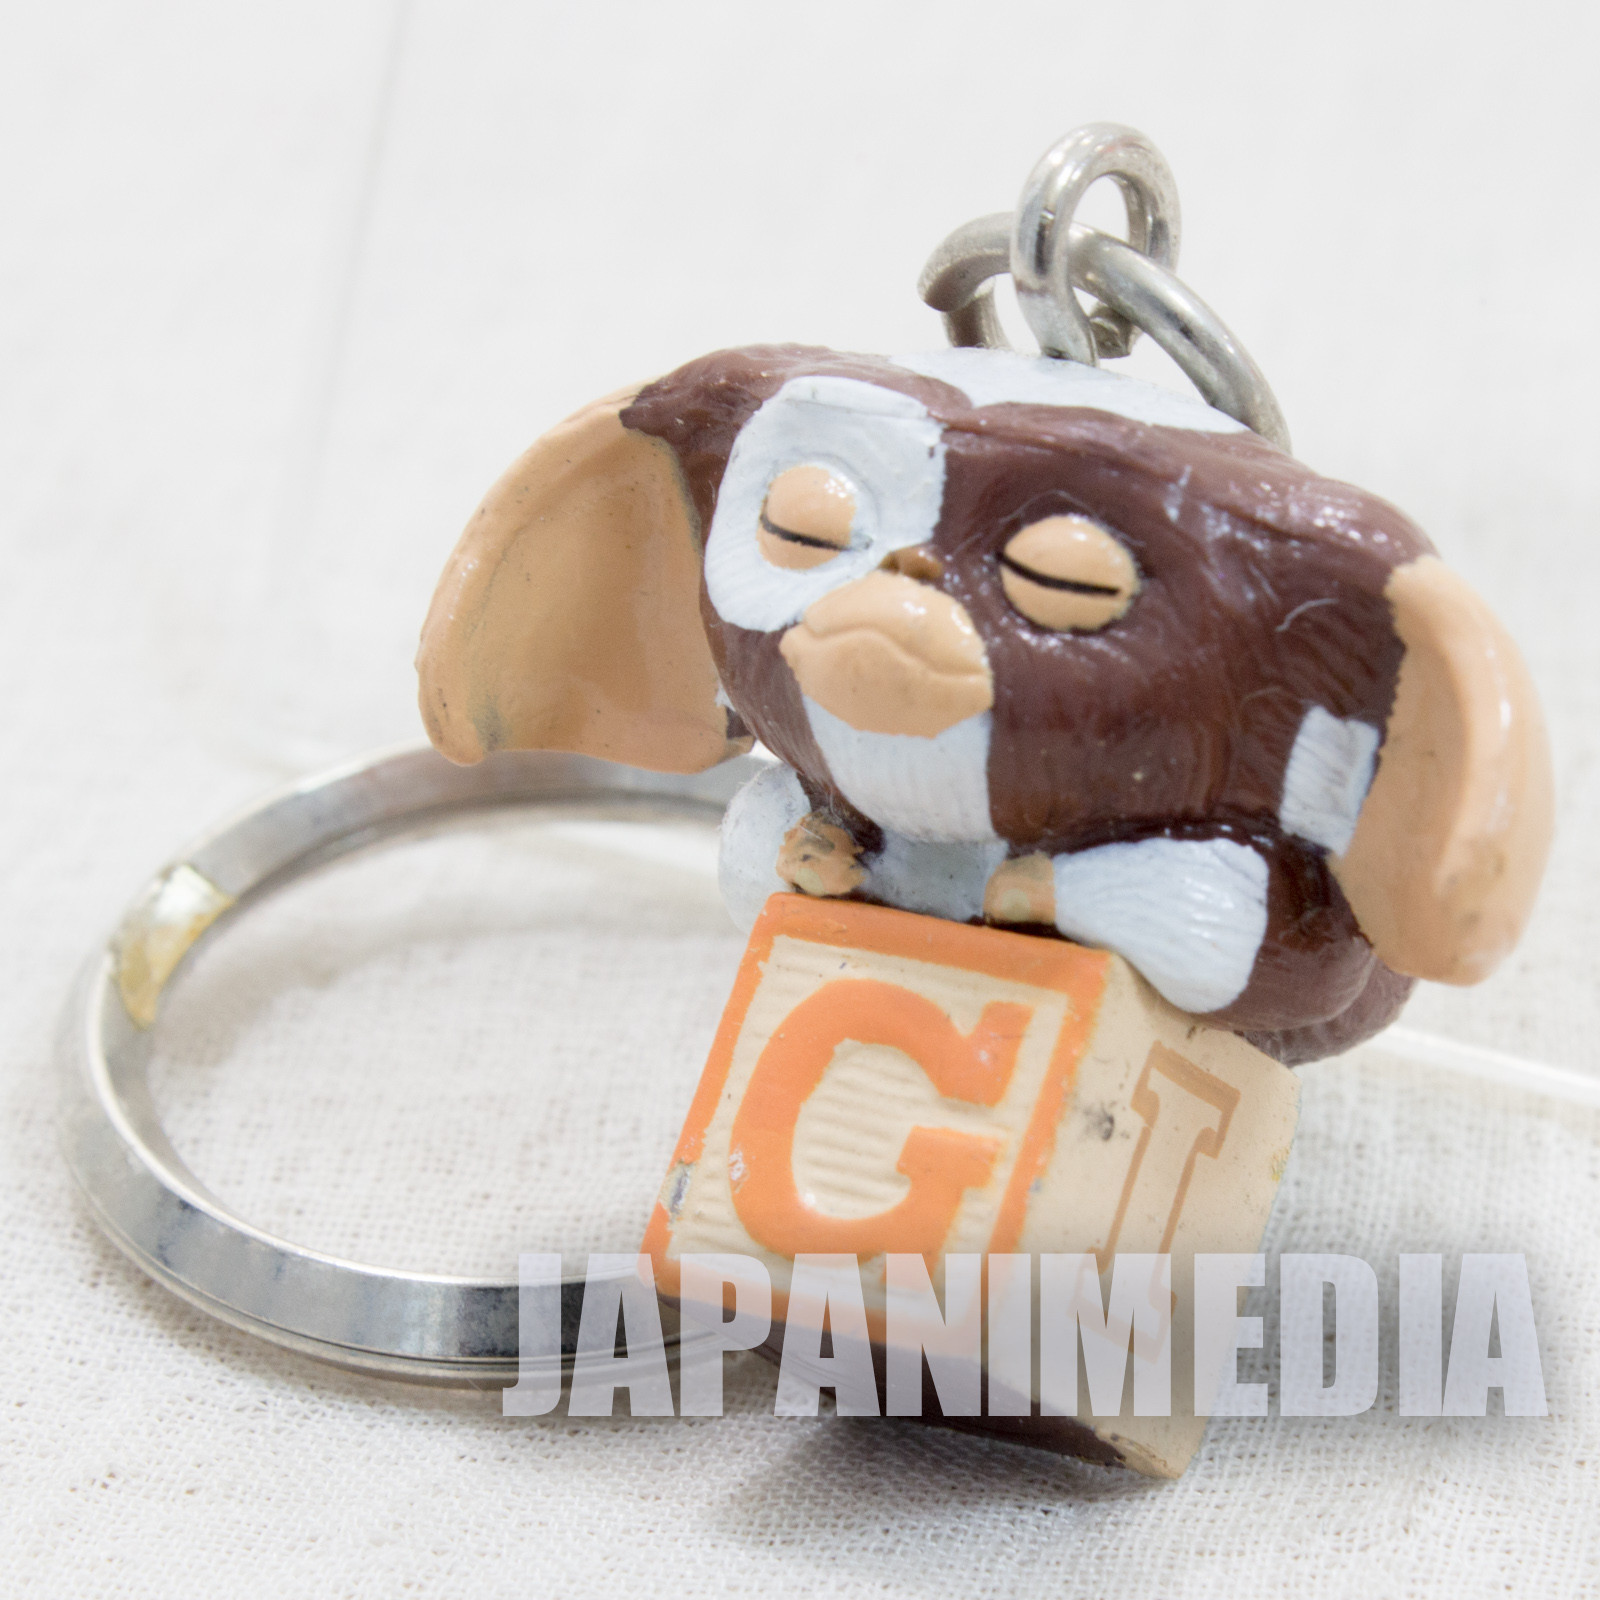 Gremlins Gizmo on Block Mascot Figure Keychain #1 JAPAN